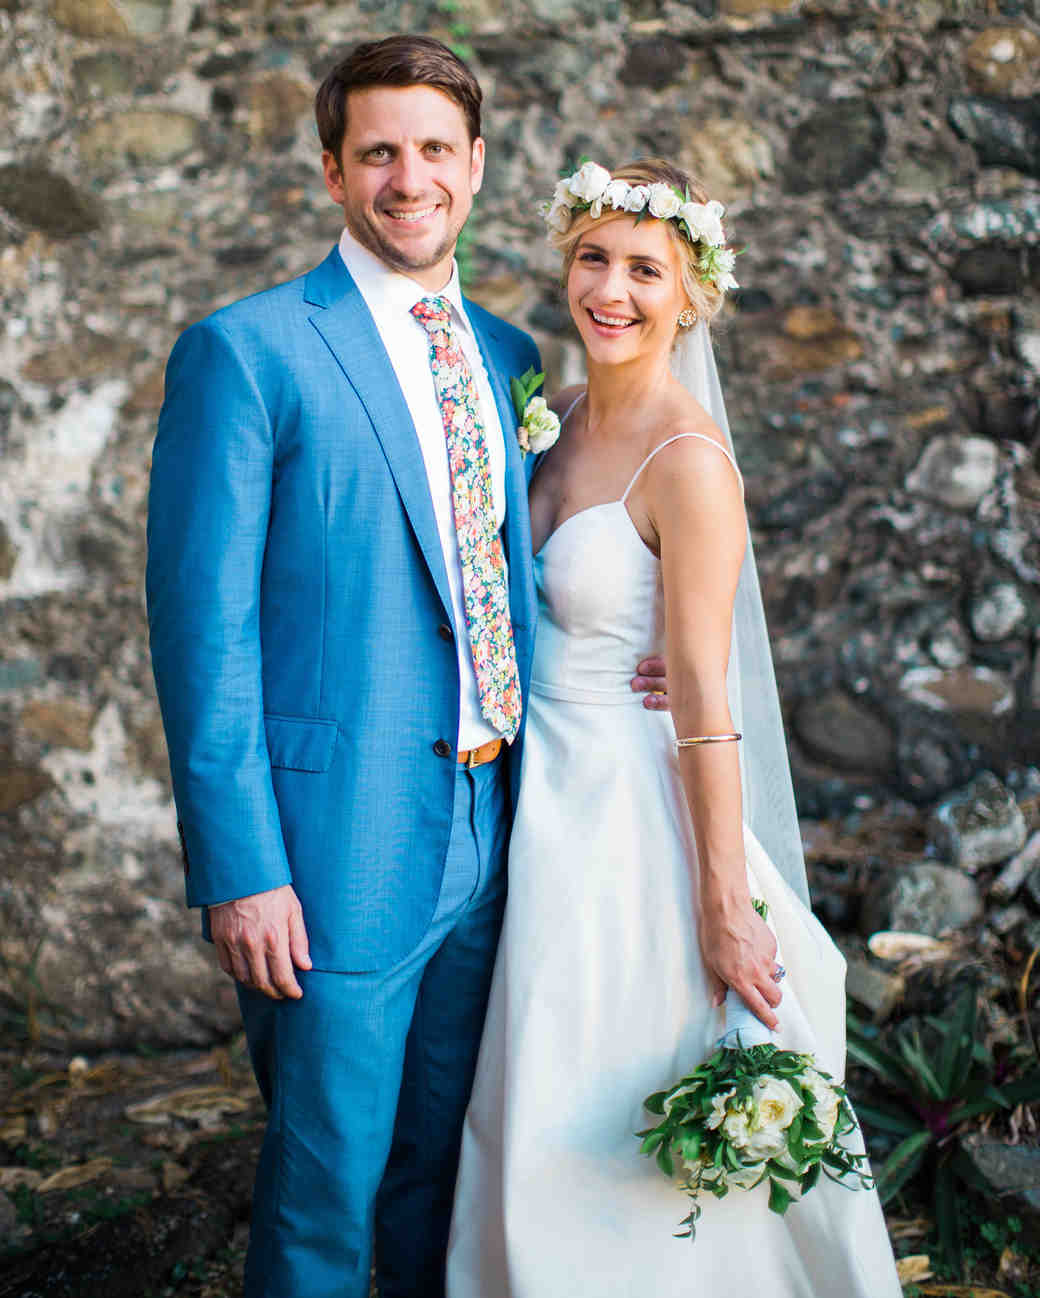 68 Flower Crown Ideas to Complete Your Wedding Hairstyle Martha